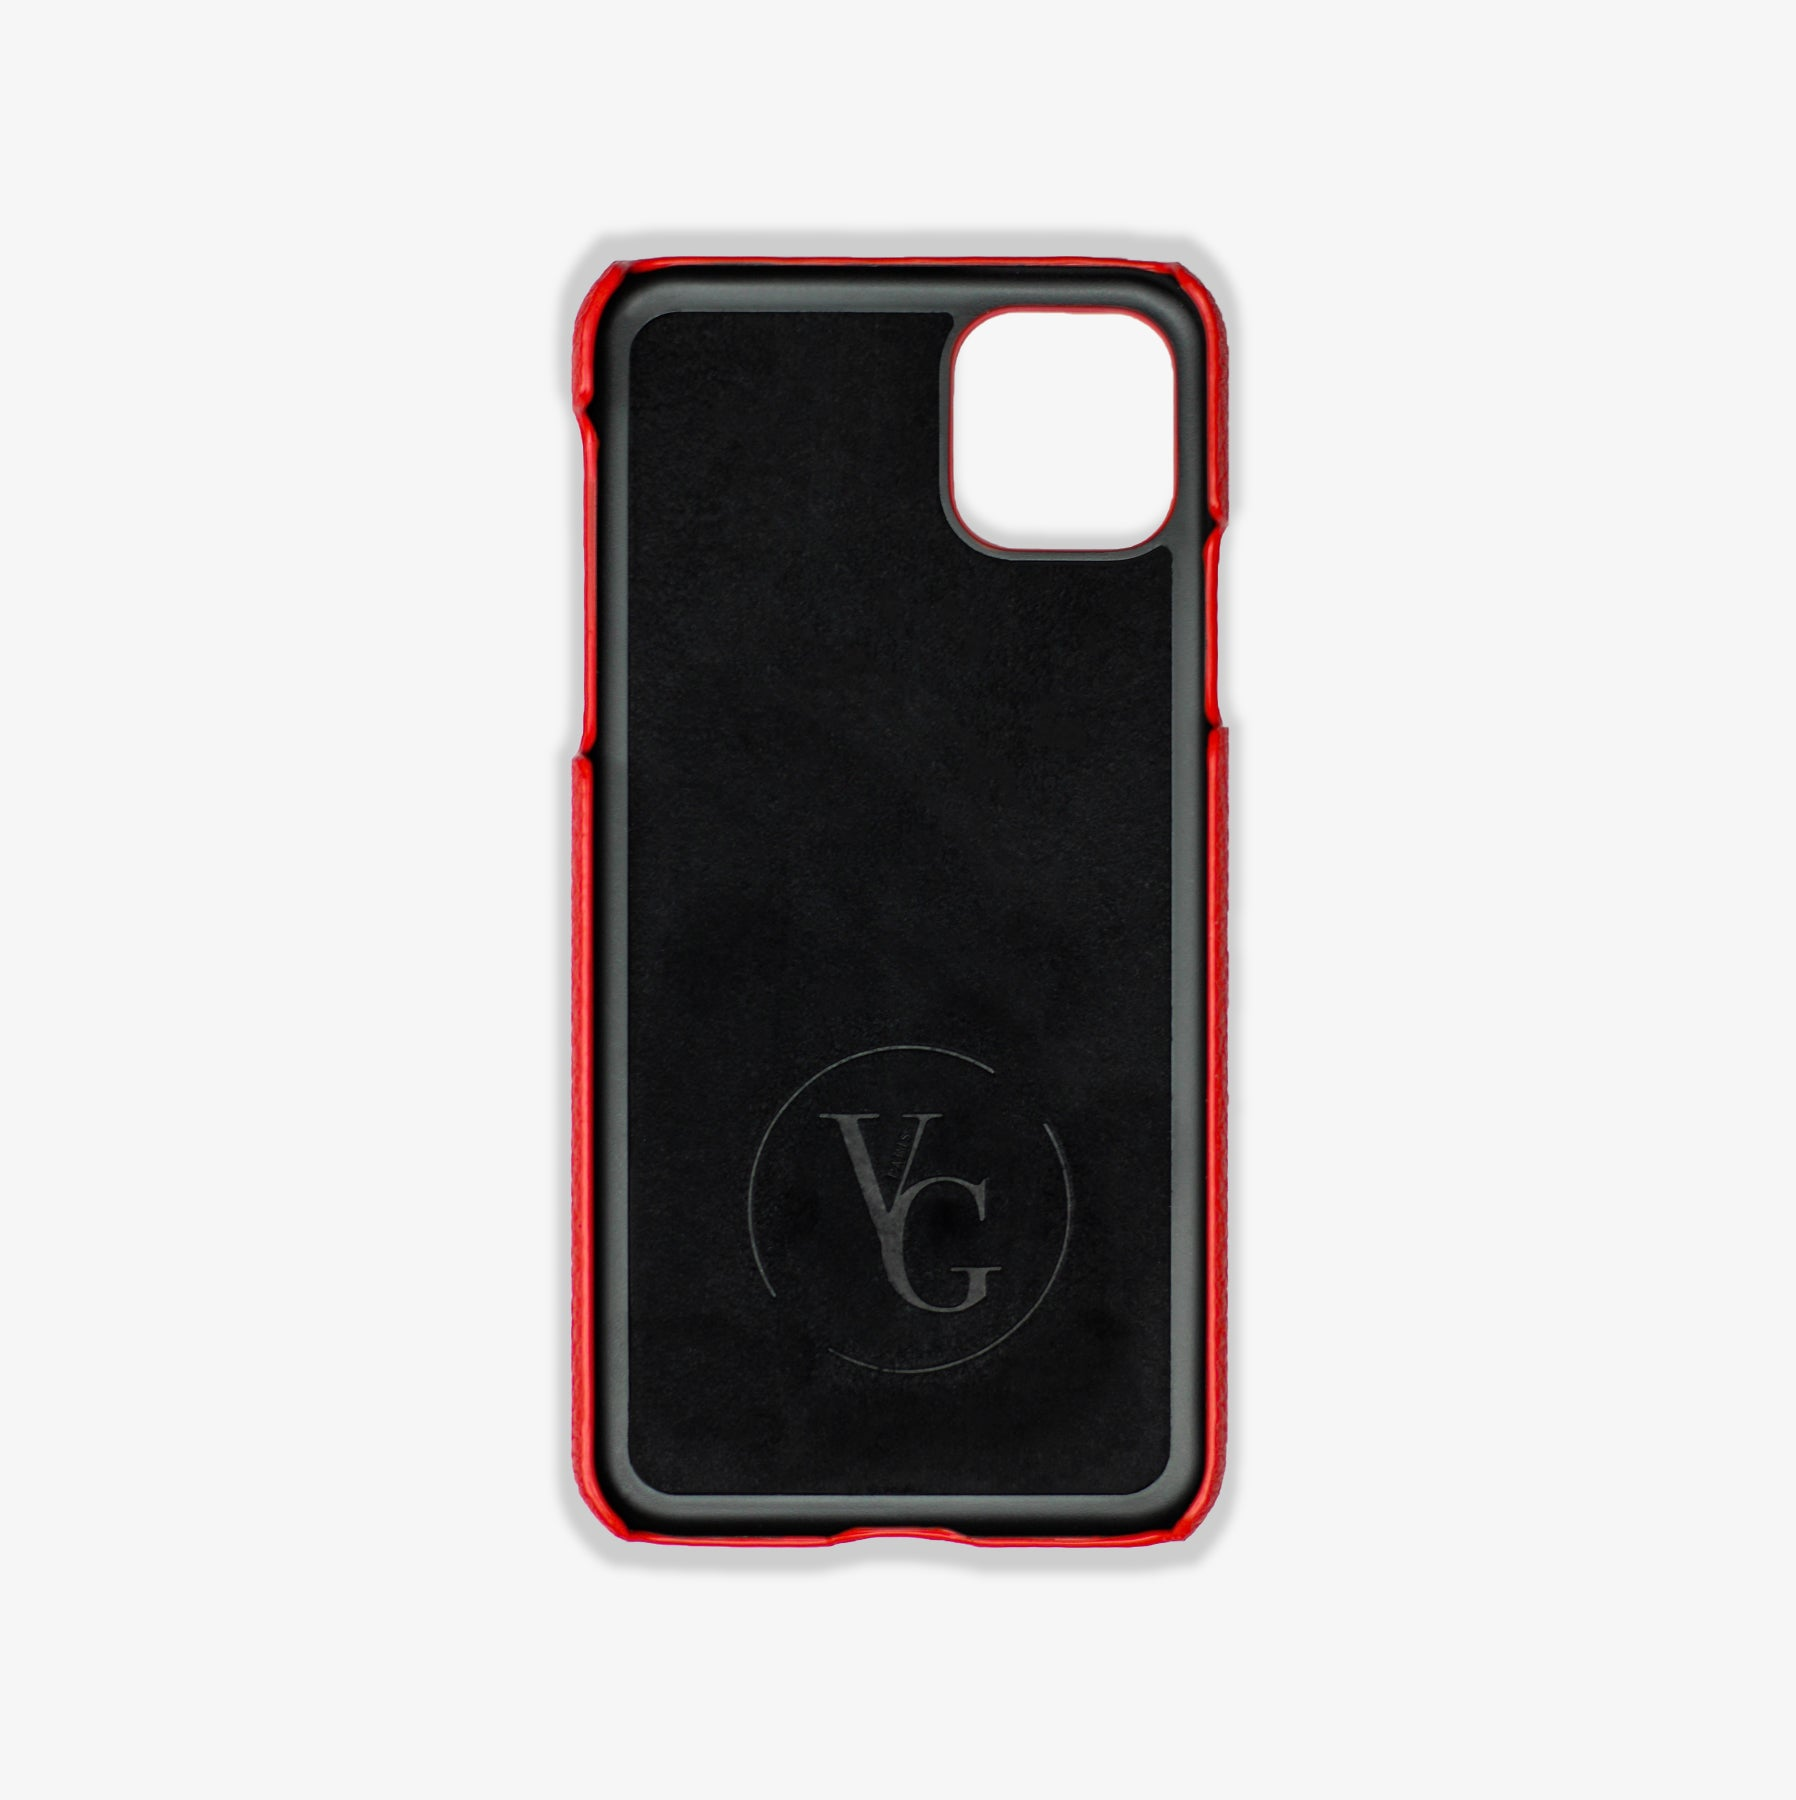 COQUE IPHONE 11 PRO MAX SEDONA